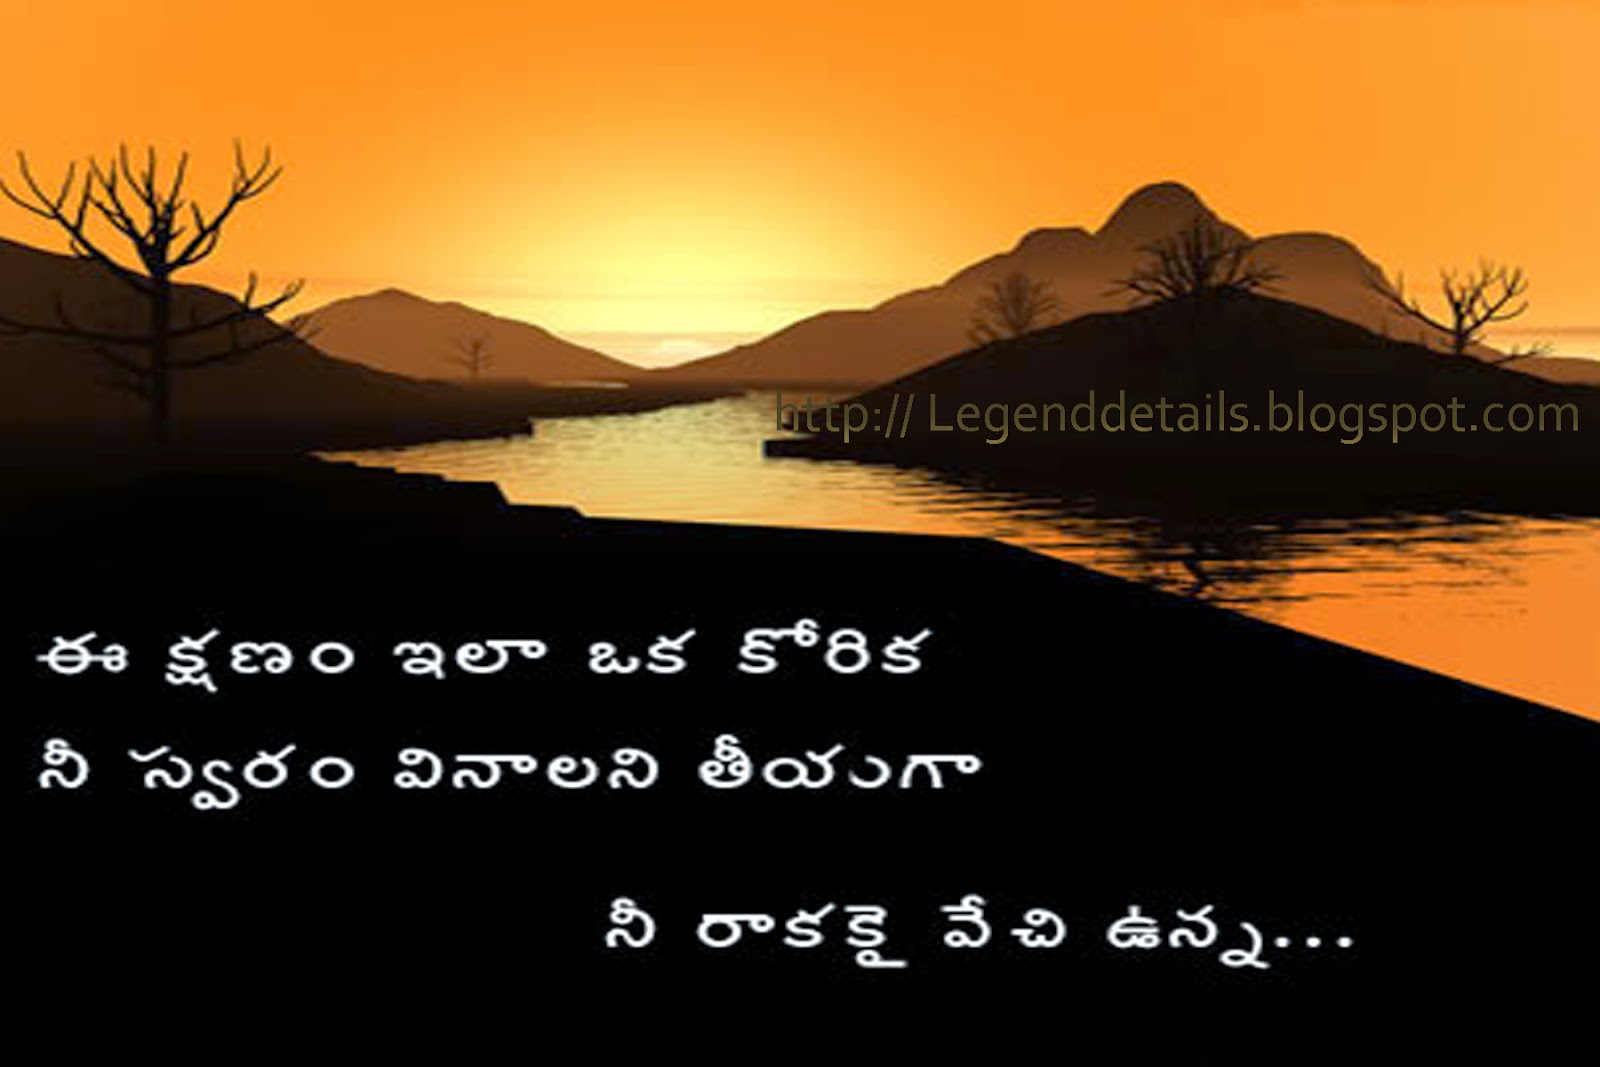 Free Love Poems And Quotes Beautiful Love Poetry In Telugu With Images  Legendary Quotes